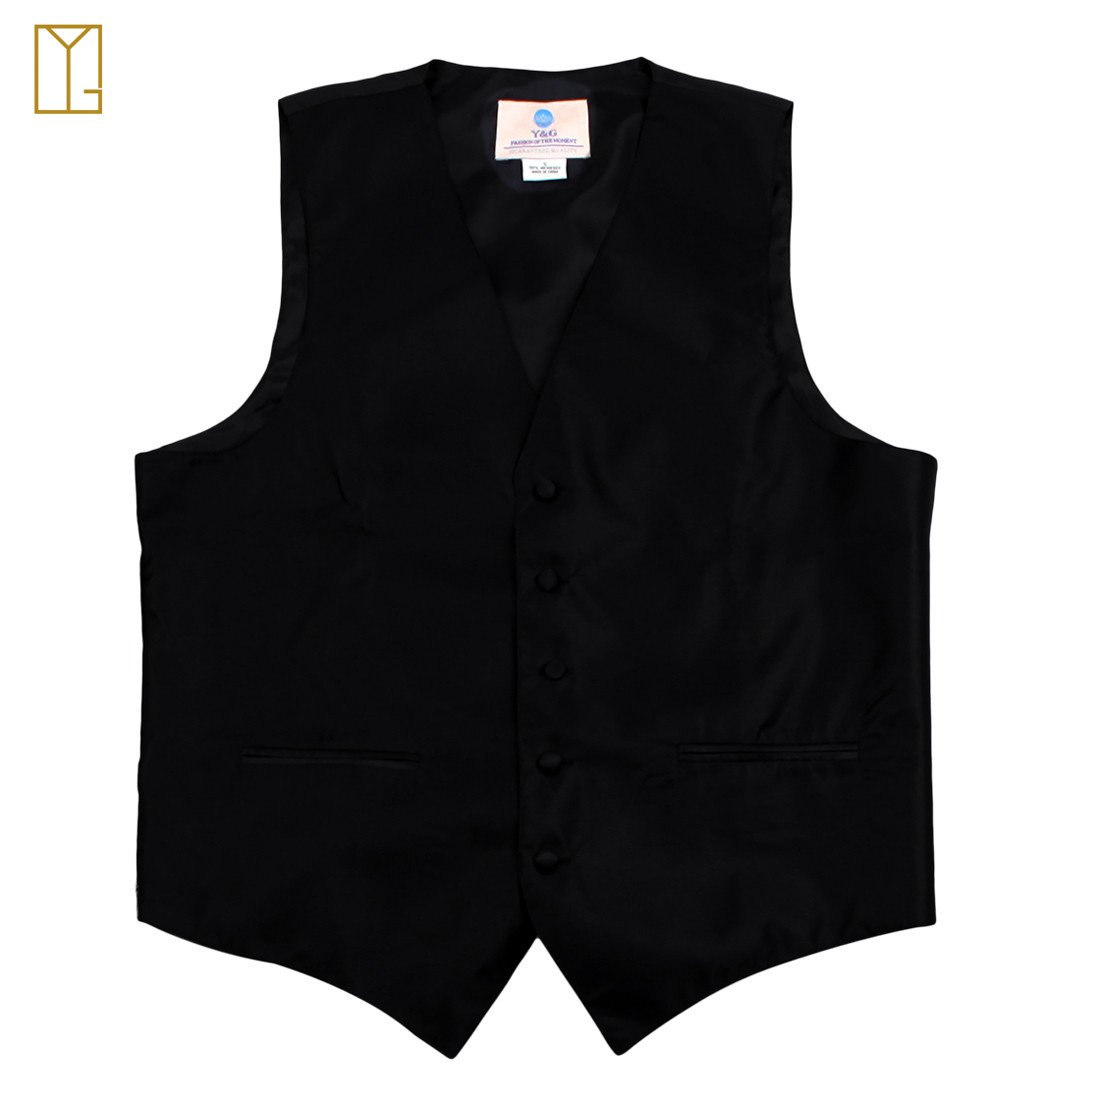 Solid Black Formal Vest for Men Patterned for Mens Gift Idea with Neck Tie, Cufflinks, Handkerchief, Bow Tie for Suit Vs1003 (3xl) by Y&G (Image #4)